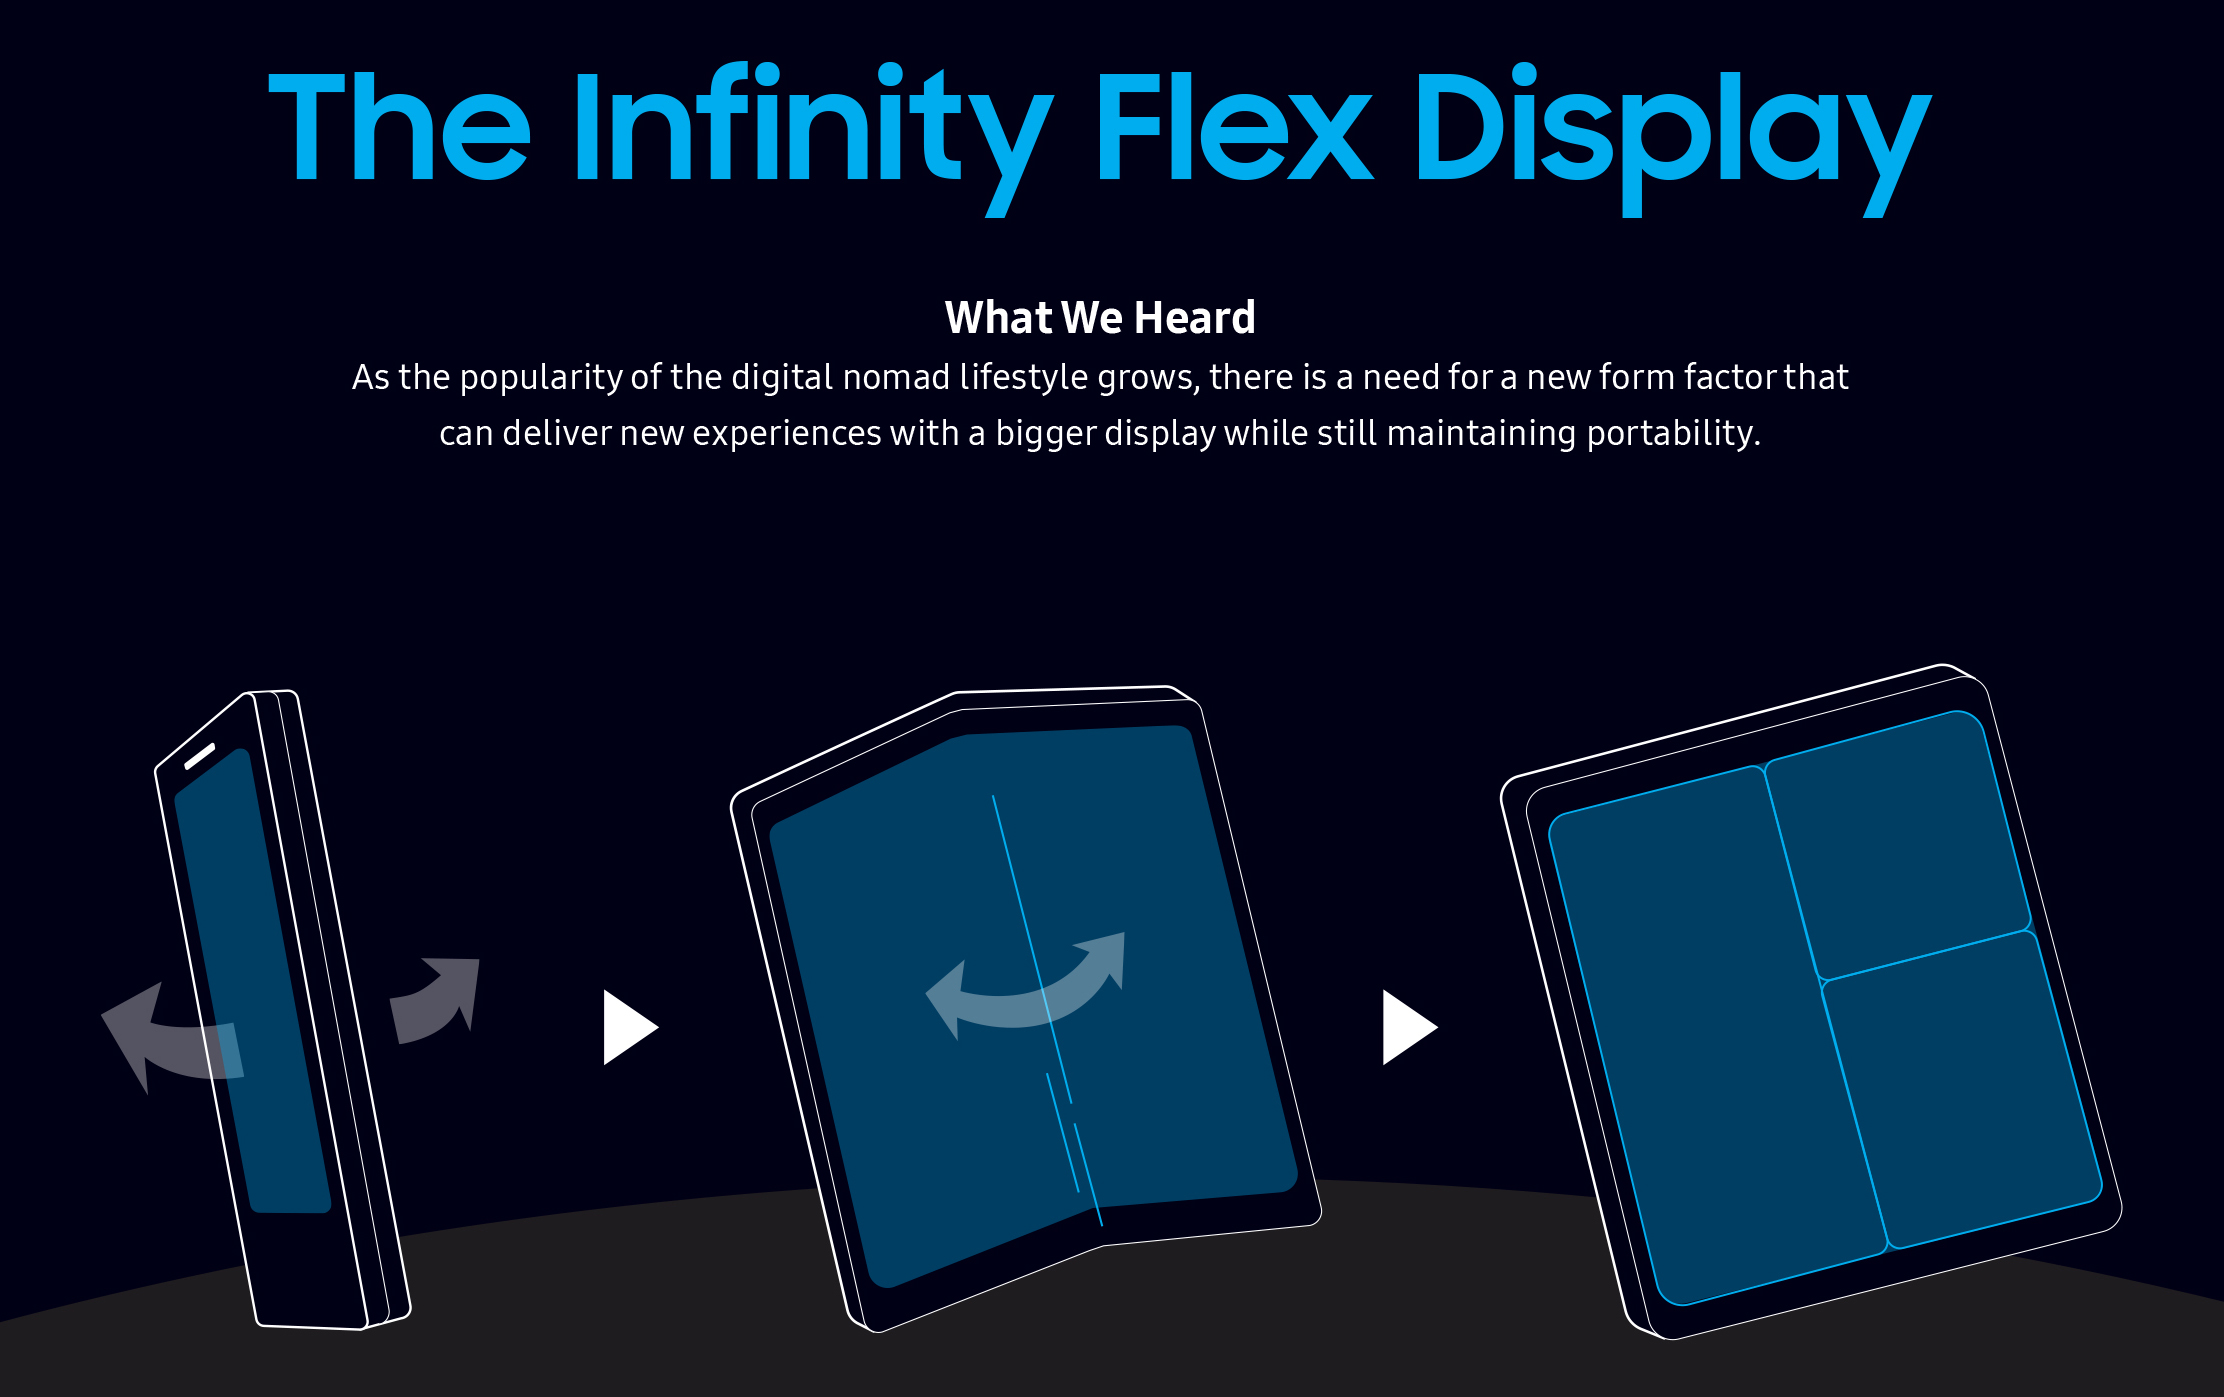 Samsung announces Infinity Flex Display for foldable smartphones